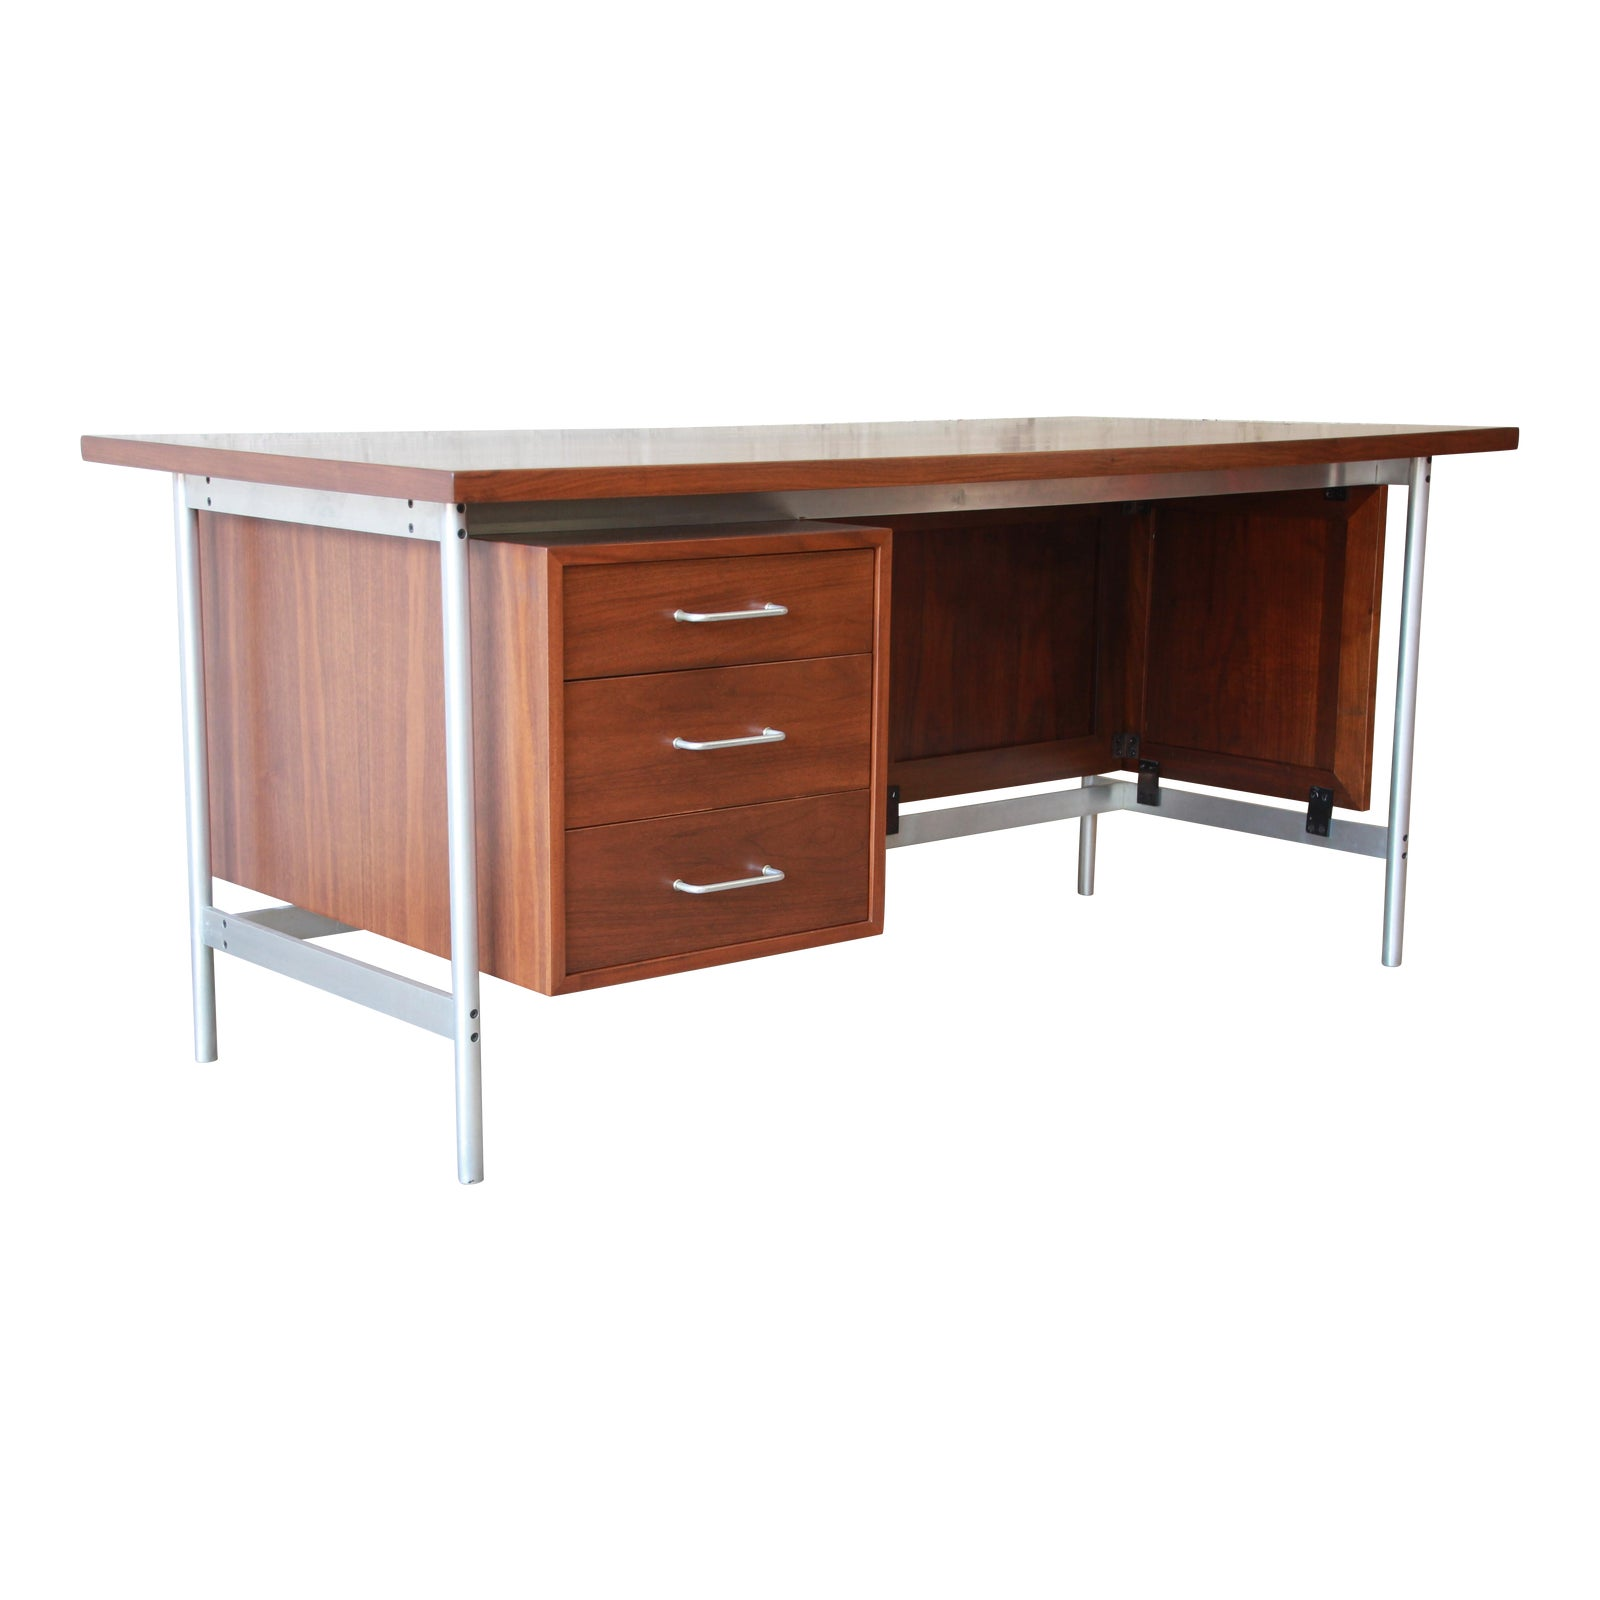 Sophisticated Jens Risom Mid Century Modern Executive Desk In